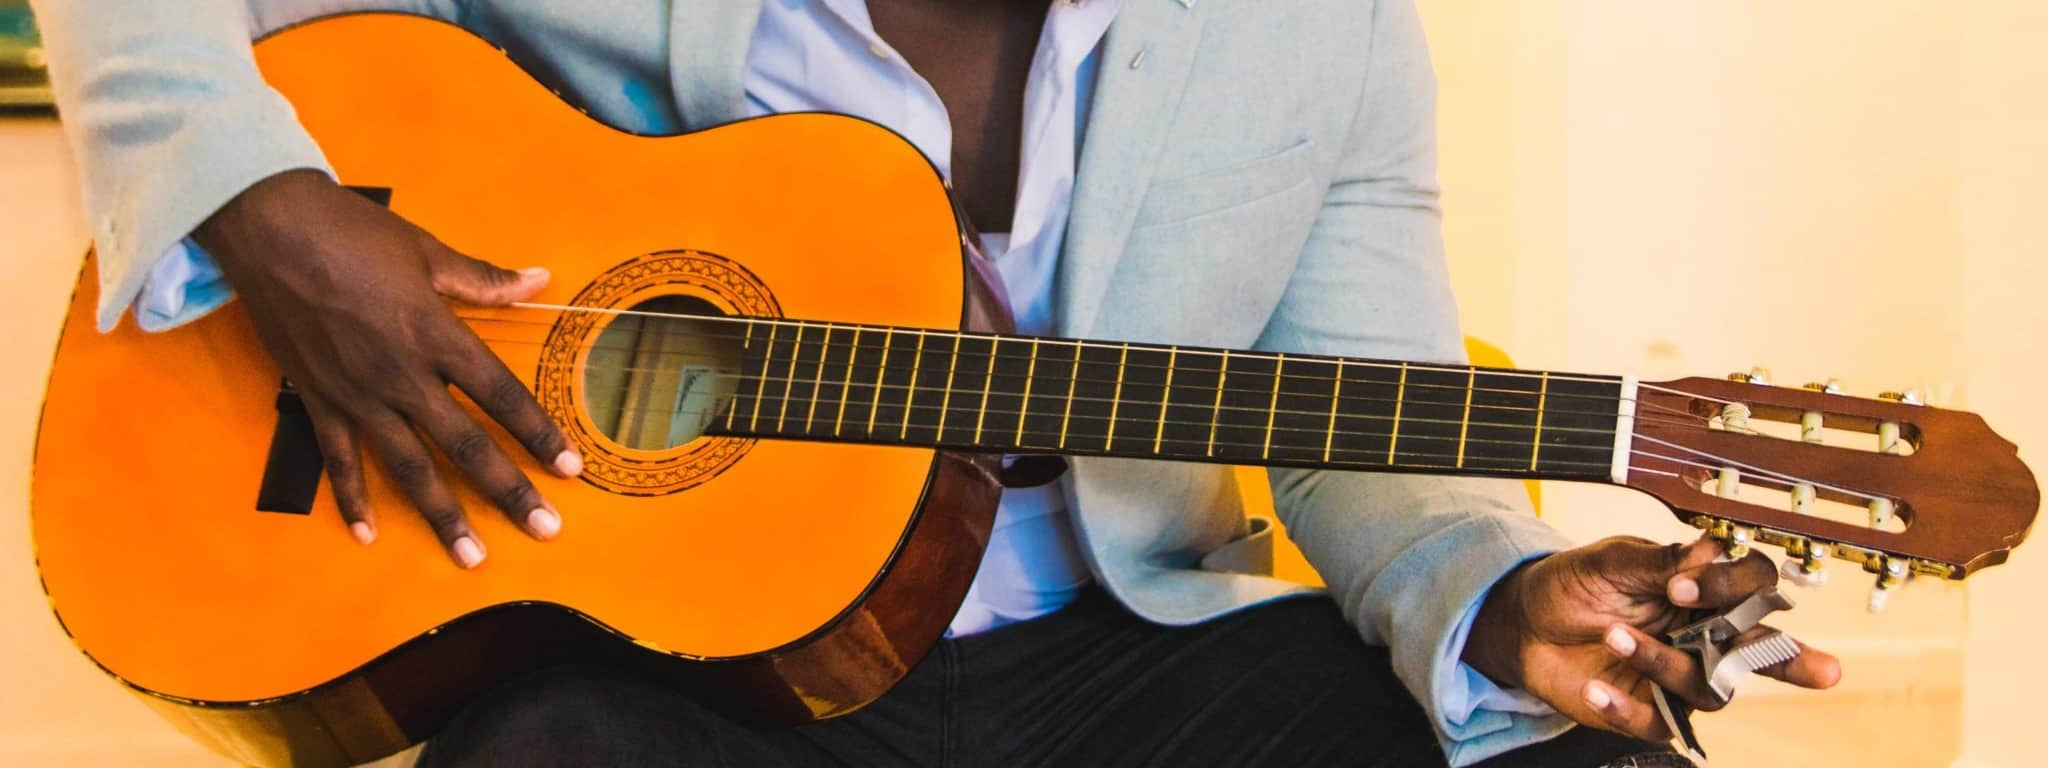 Man tuning an acoustic guitar